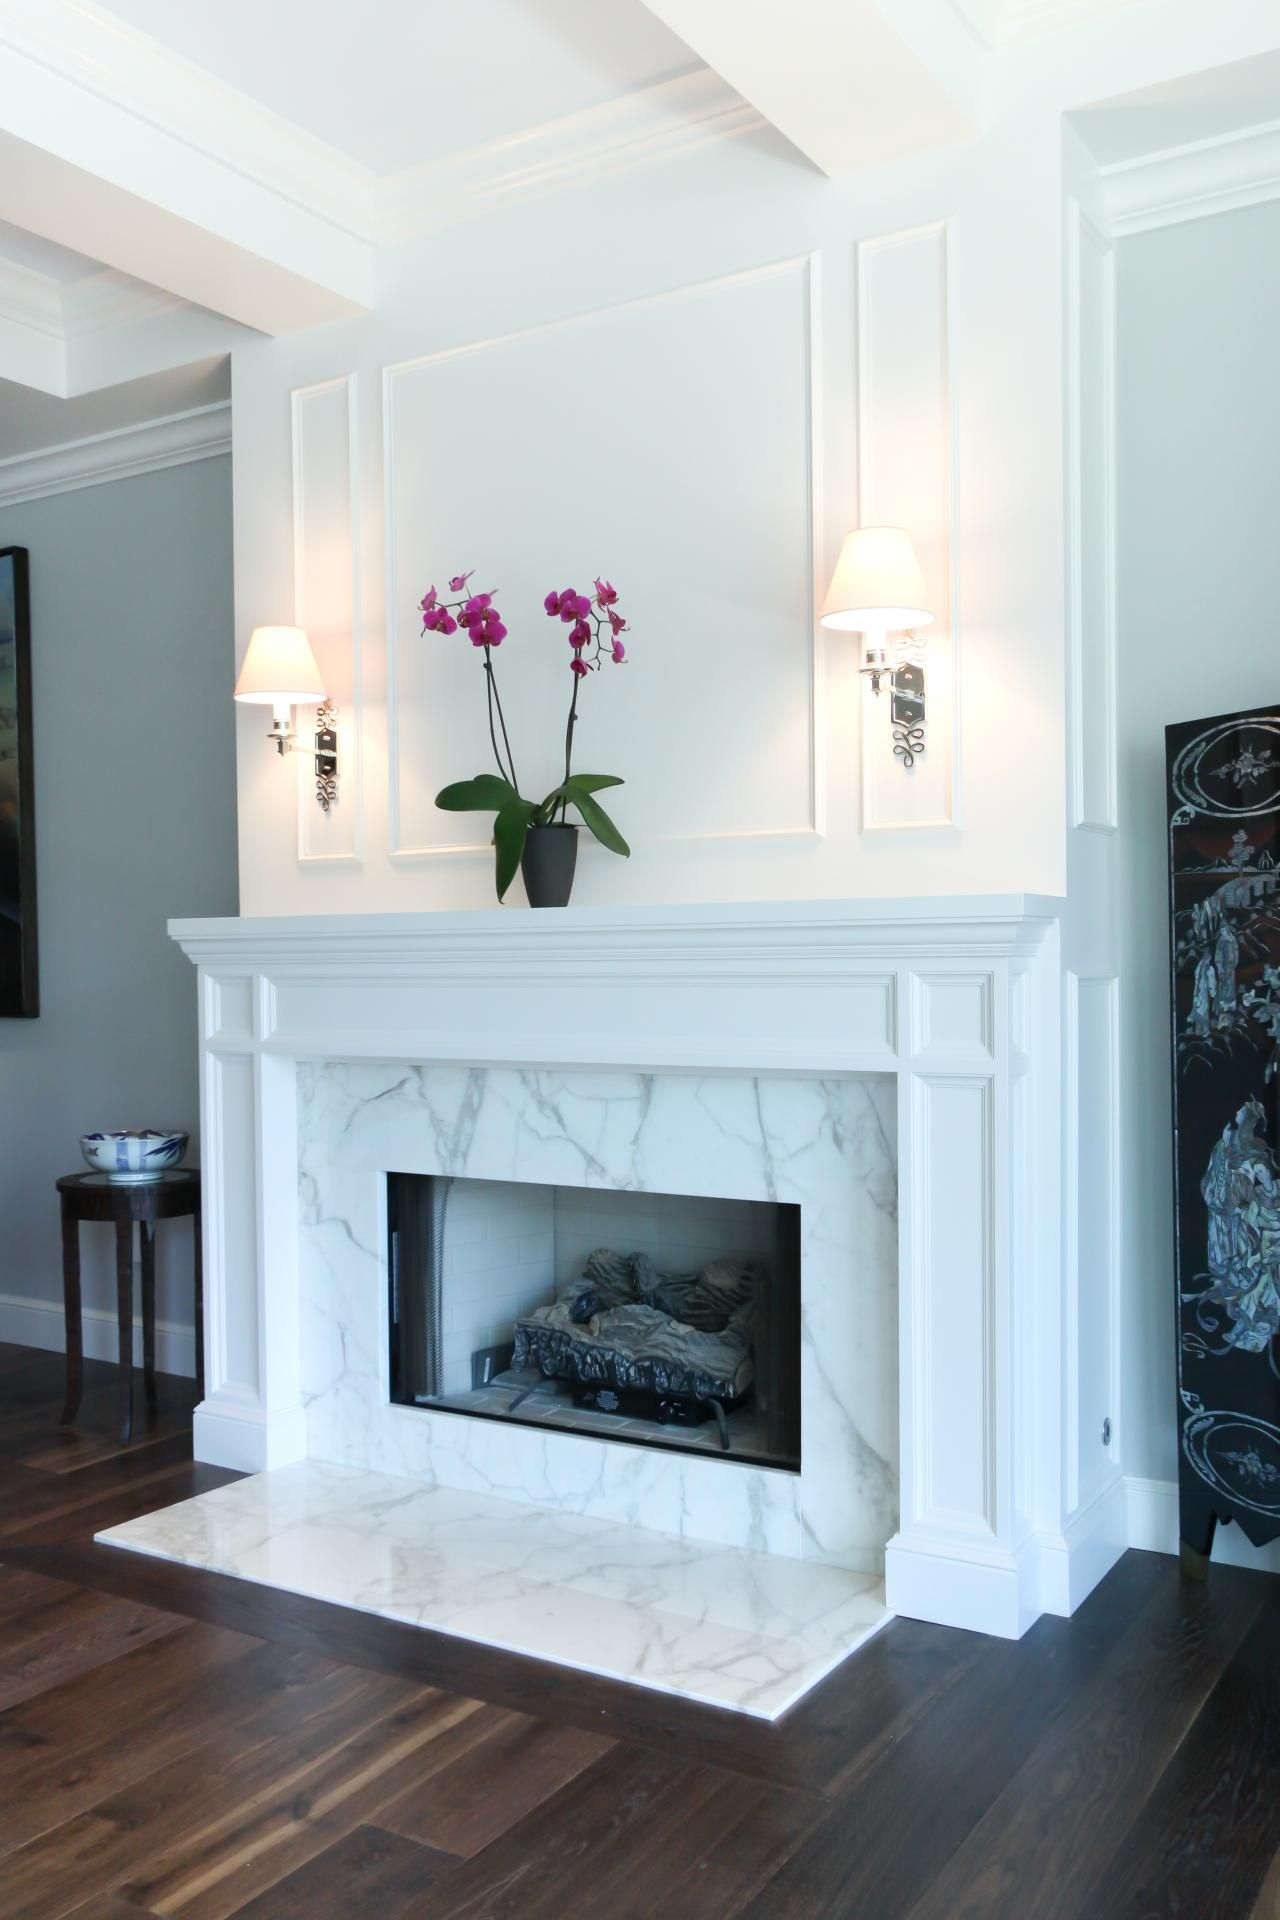 80 Fabulous Fireplace Design Ideas For Any Budget Or Style Home